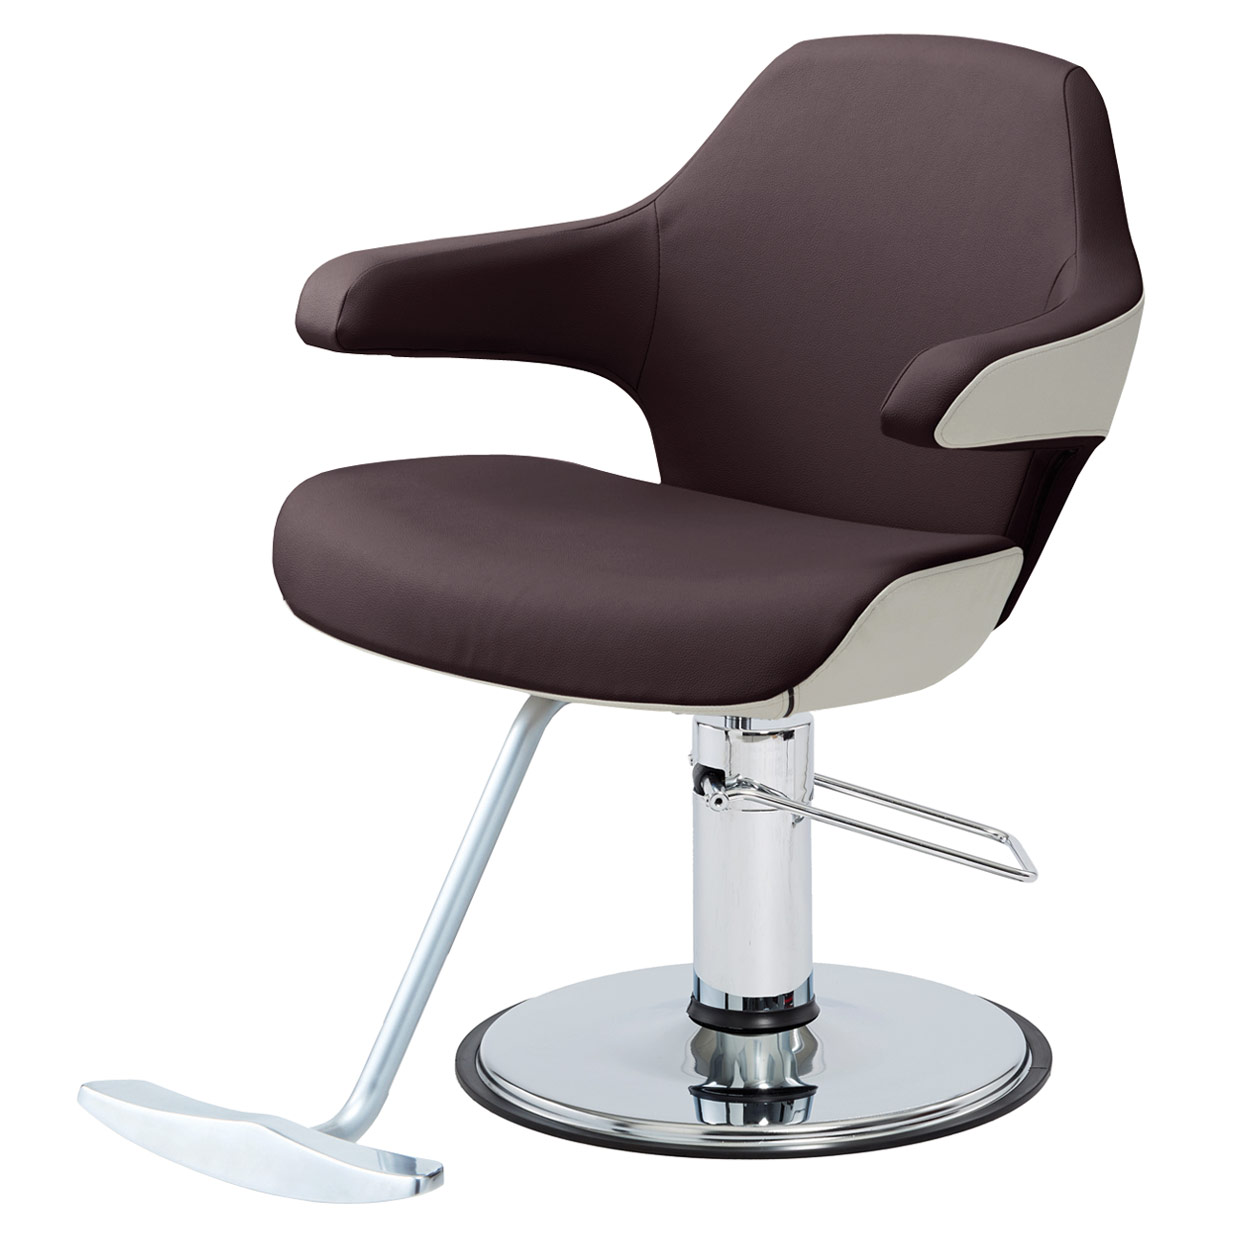 Takara Belmont Cove Salon Styling Chair image size reference